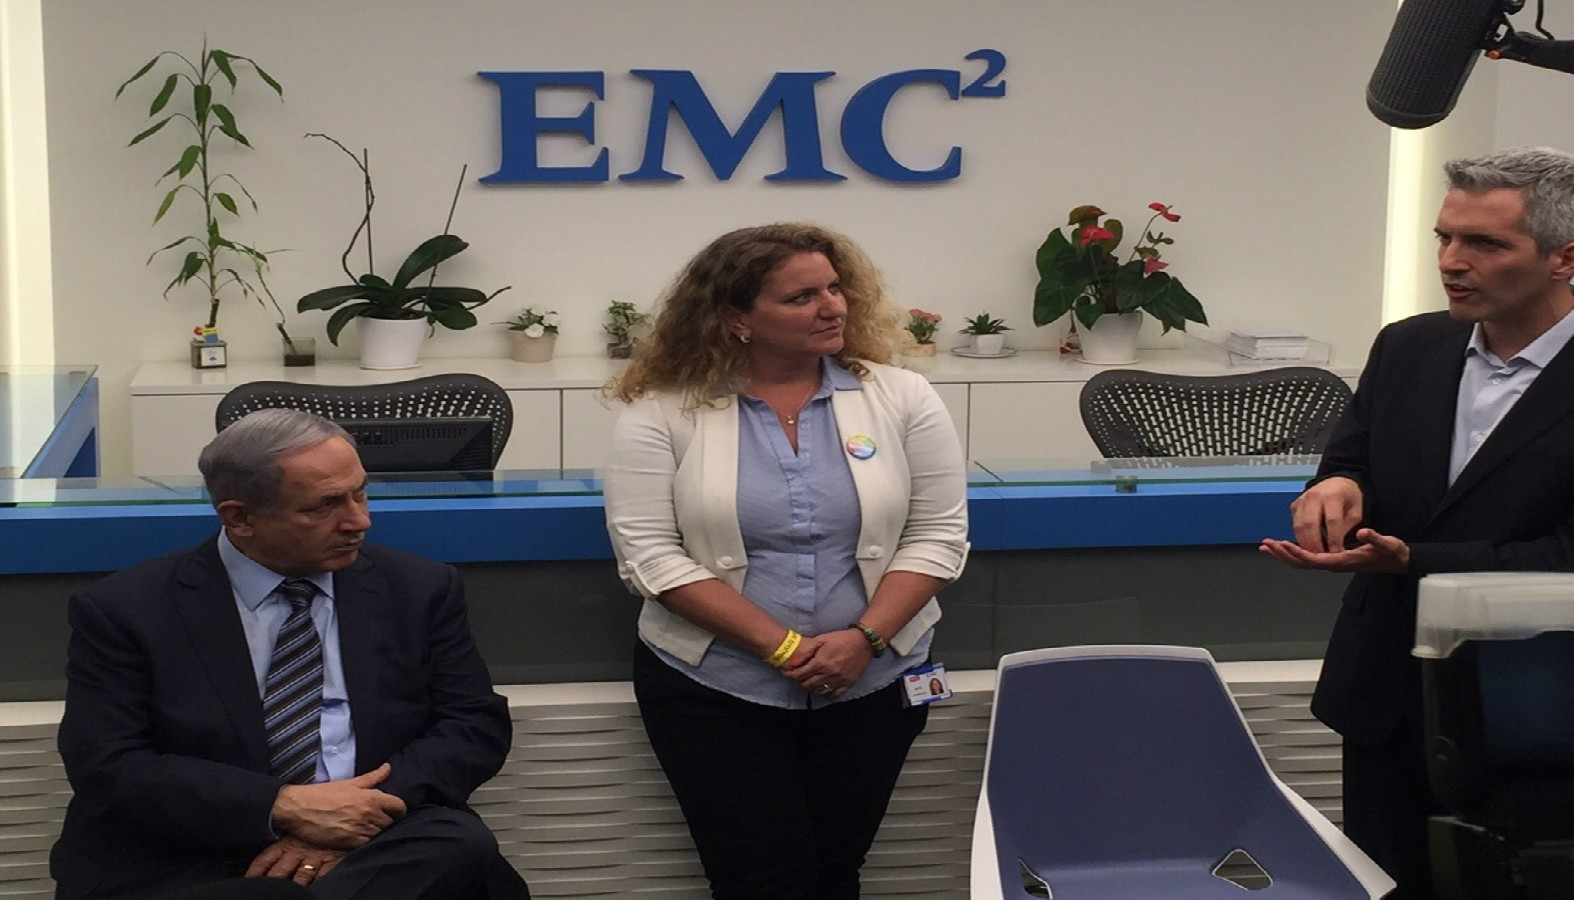 Prime Minister Netanyahu in Beersheva with Maya Hofman Levy, site leader at EMC/RSA Center of Excellence, and Yaniv Harel, general manager of the Cyber Solutions Group at EMC, July 2015. Photo courtesy of EMC